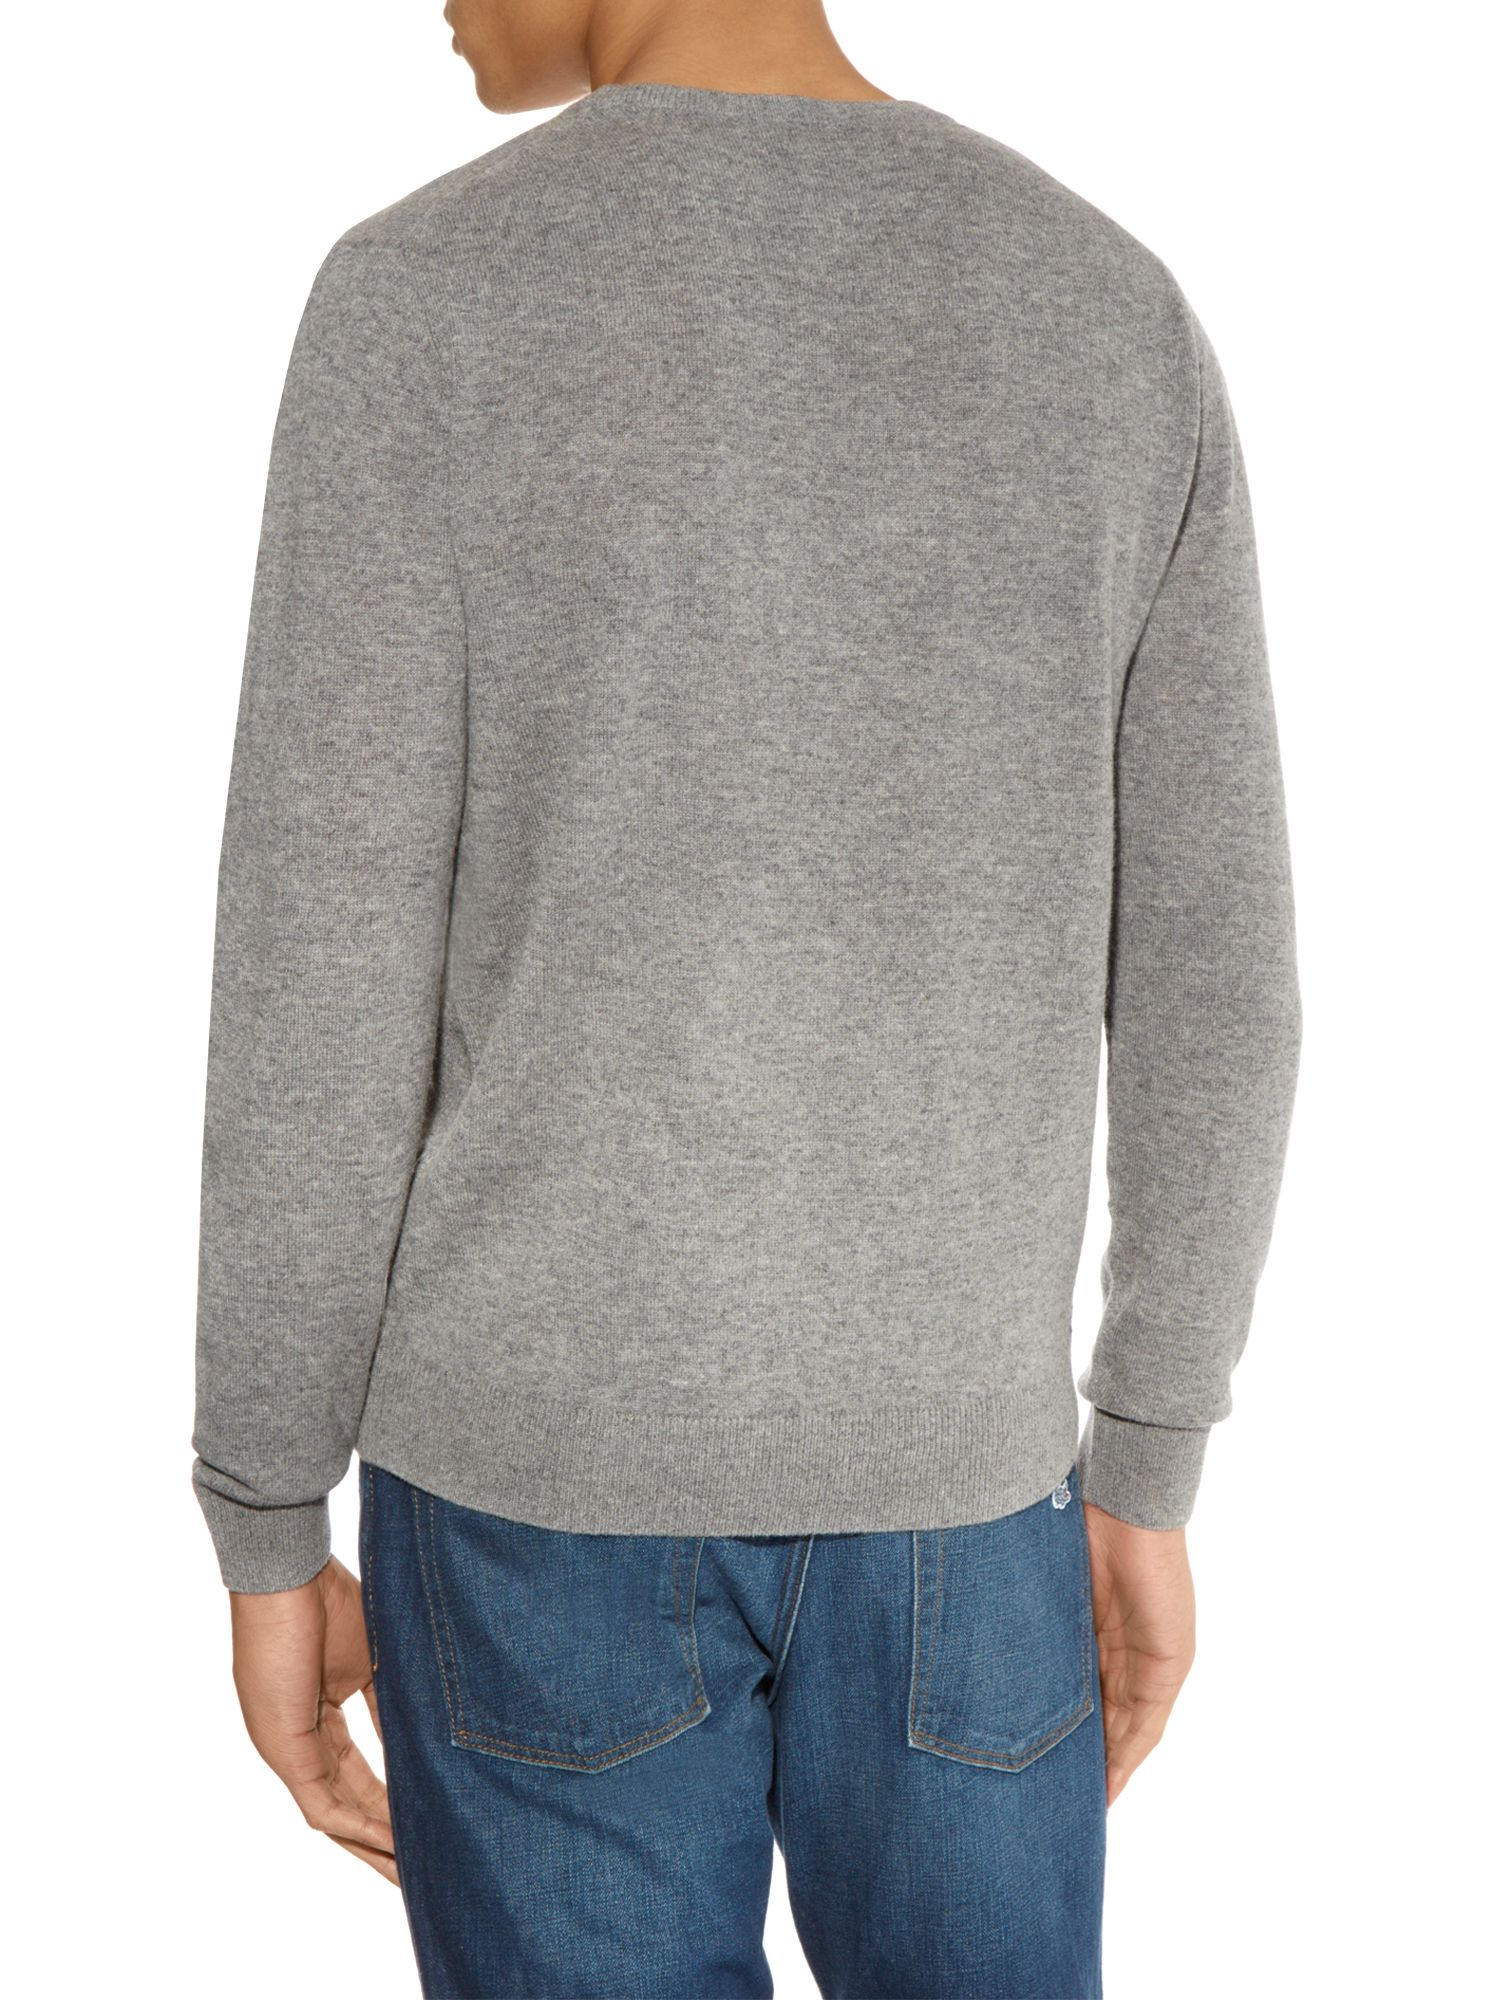 lacoste crew neck wool sweater in gray for men stone lyst. Black Bedroom Furniture Sets. Home Design Ideas